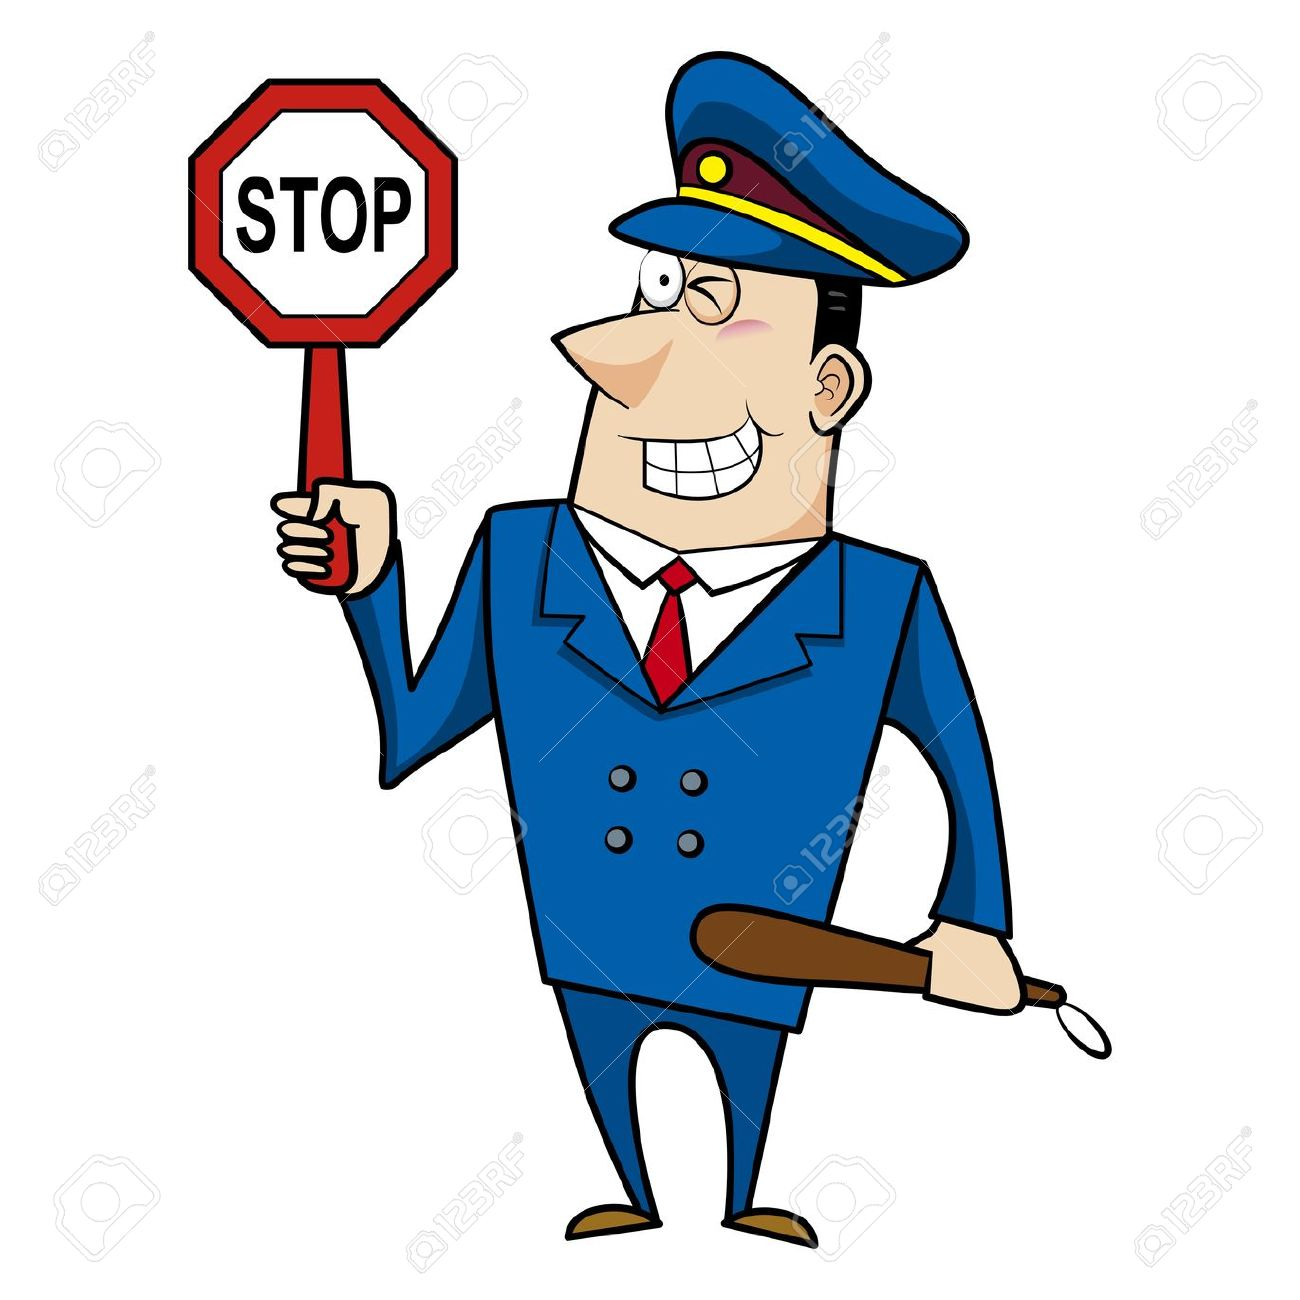 traffic-police-clipart-7.jpg